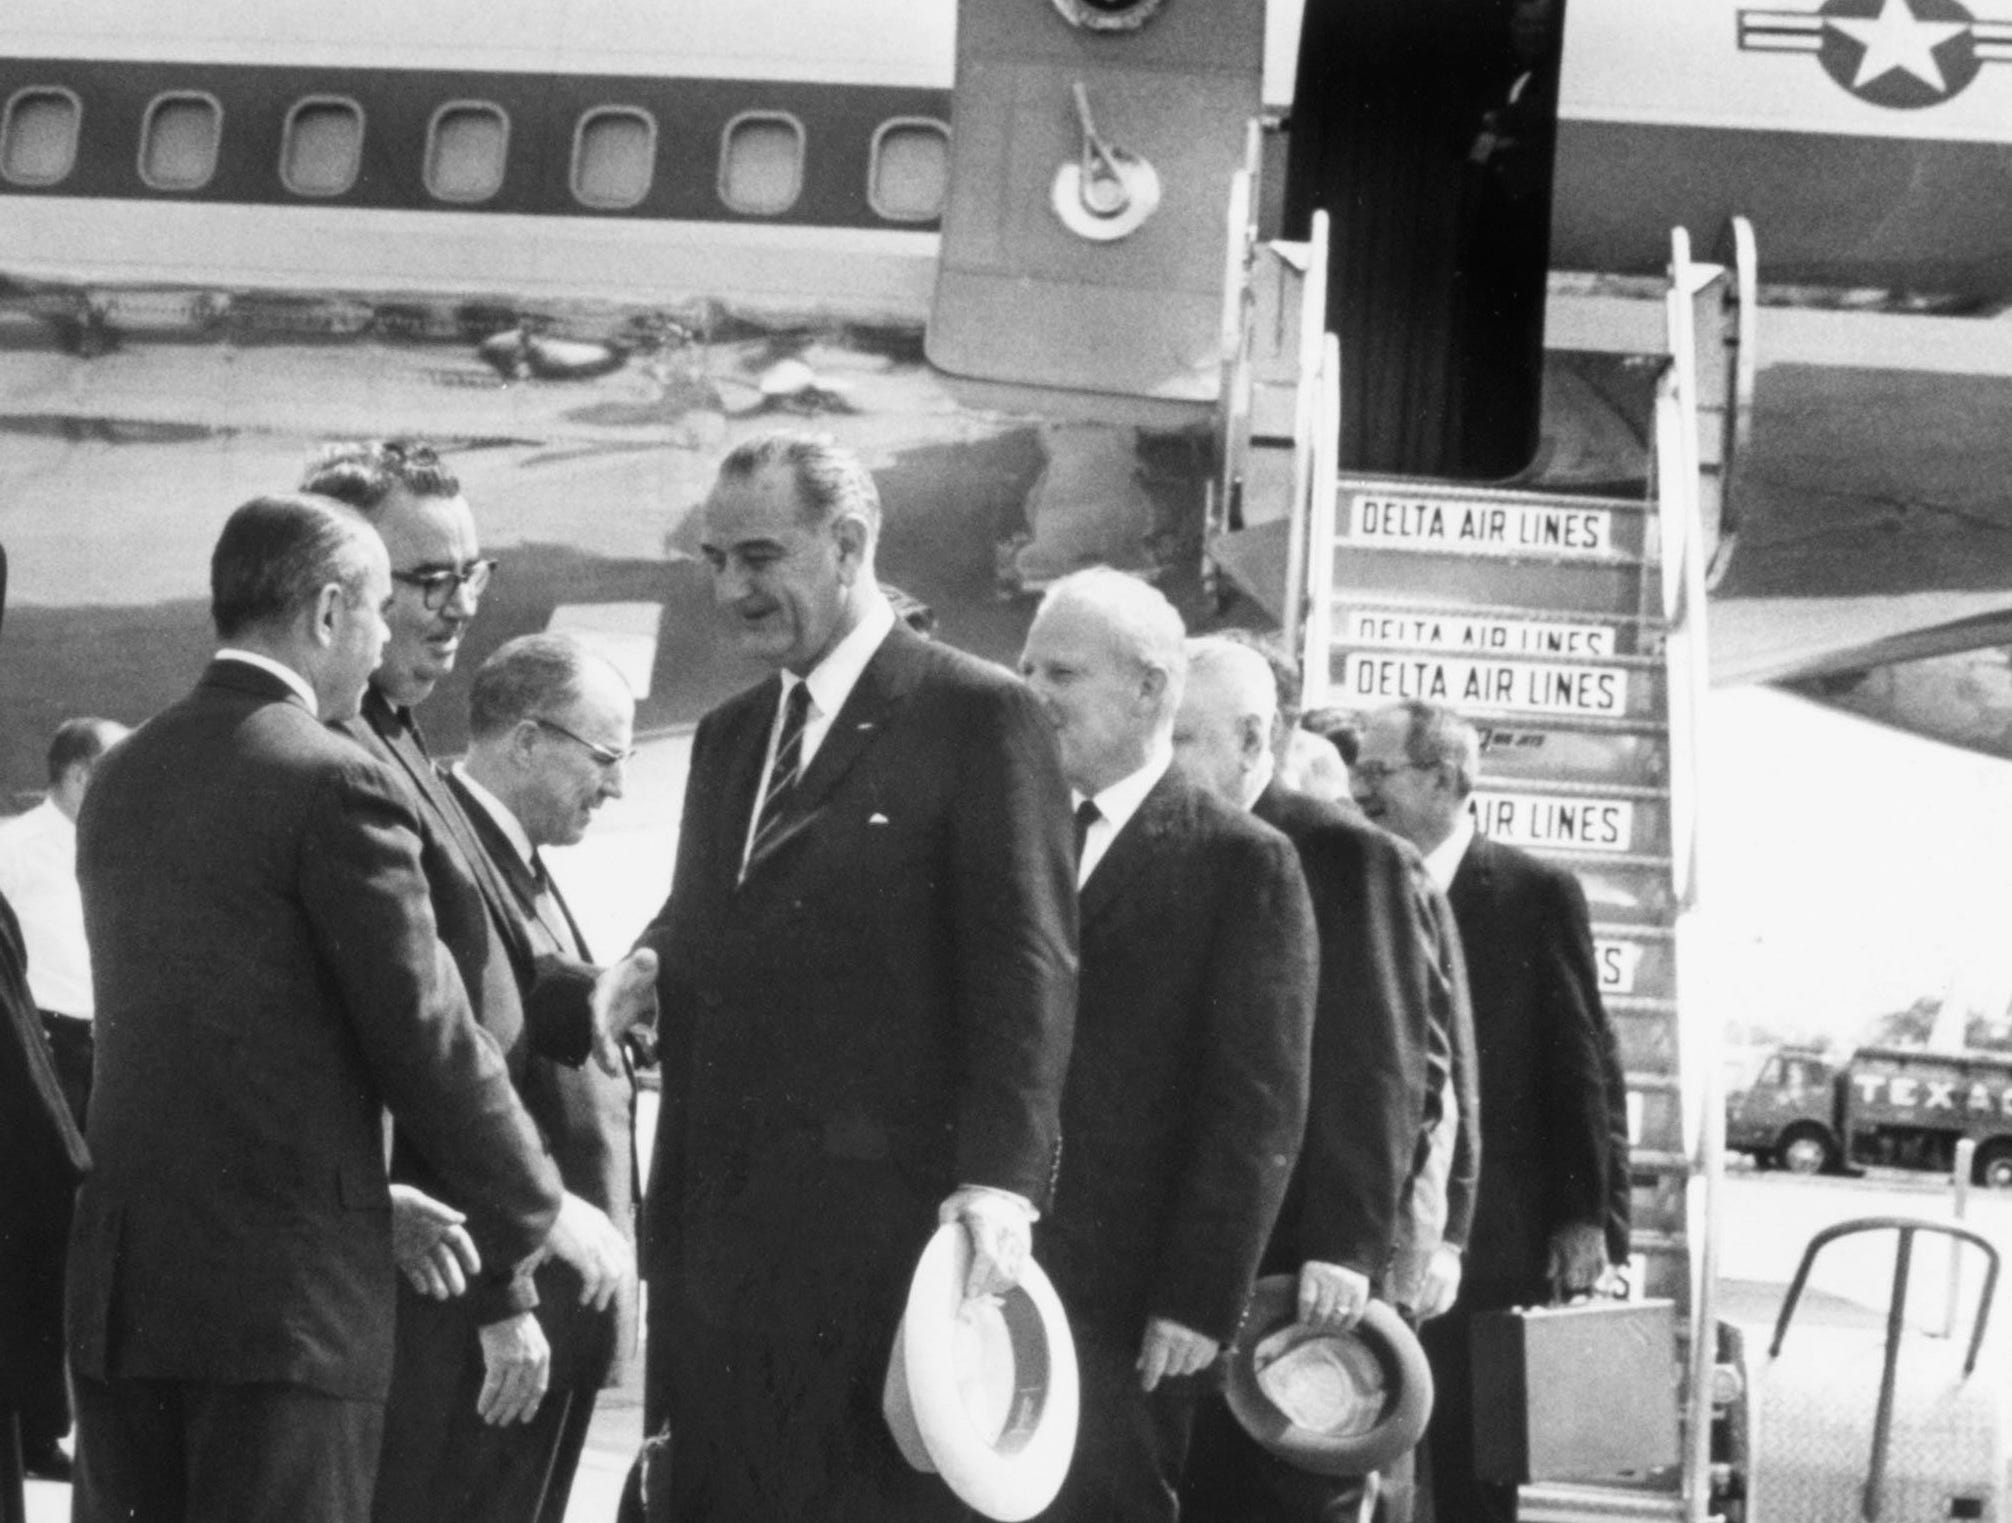 In a May 8, 1964 photograph, President Lyndon B. Johnson arrives at Municipal Airport. Among those pictured are Sam Sapirie of the Atomic Energy Commission, TVA Director Frank Smith, TVA Director A.R. Jones, and U.S. Sen. Albert Gore Sr.